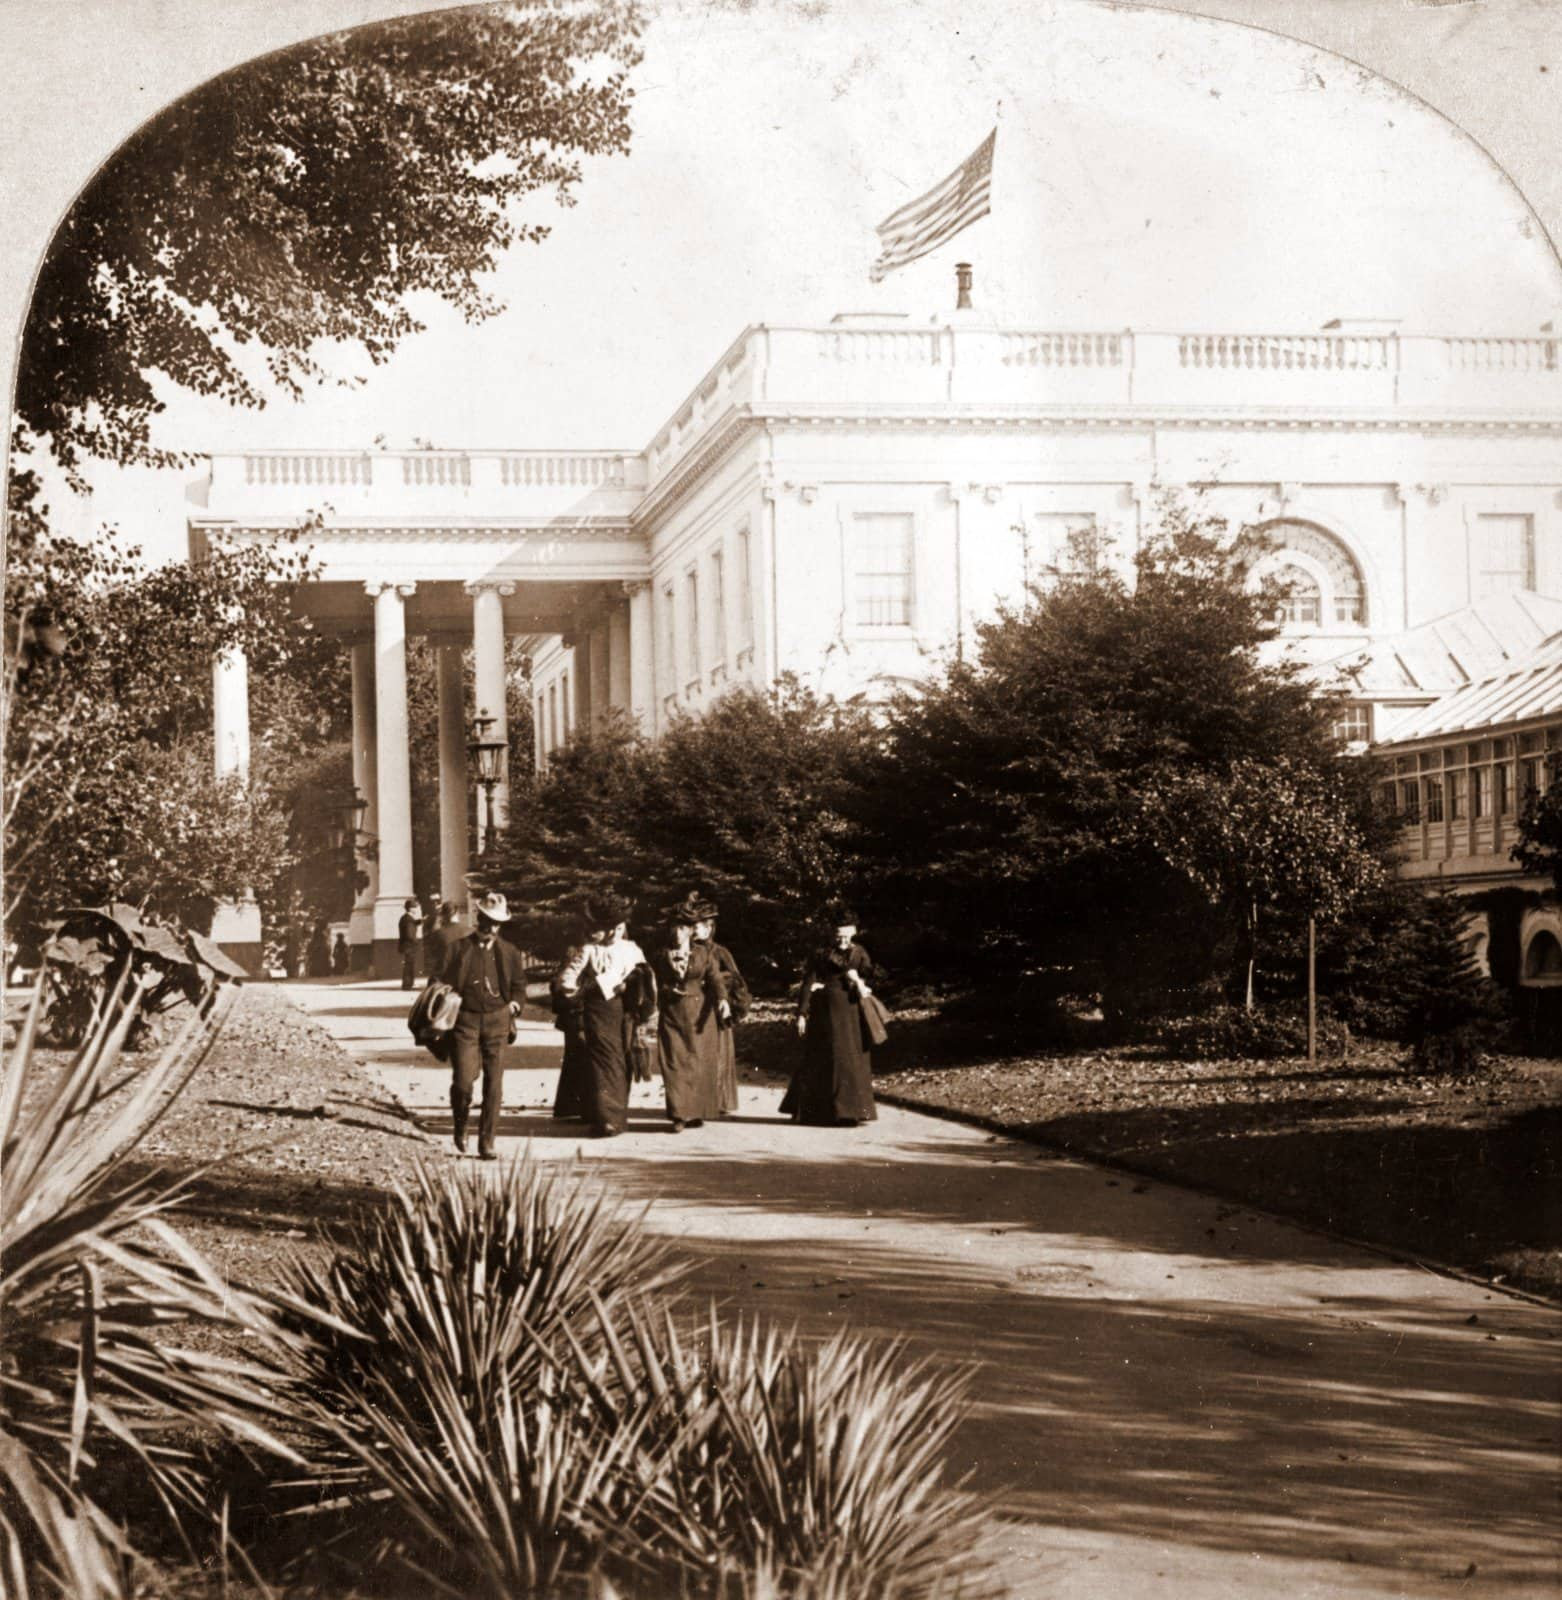 Visitors leaving the White House